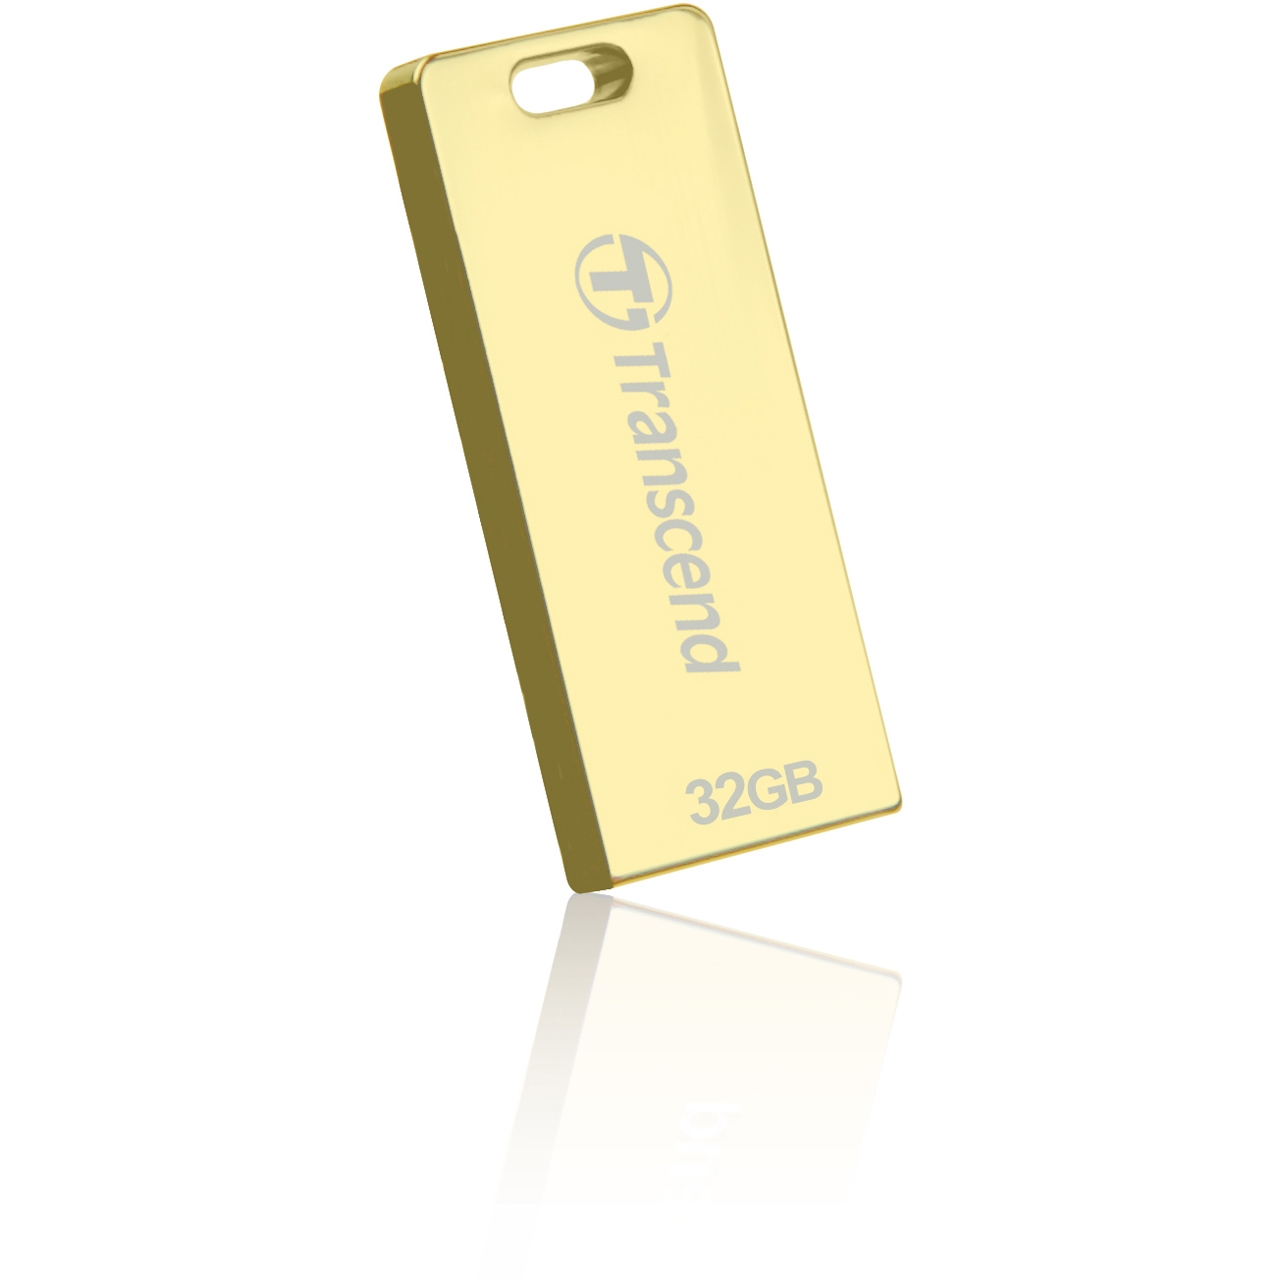 Фото: USB Flash Drive 32Gb Transcend T3G Golden / 15/11Mbps / TS32GJFT3G